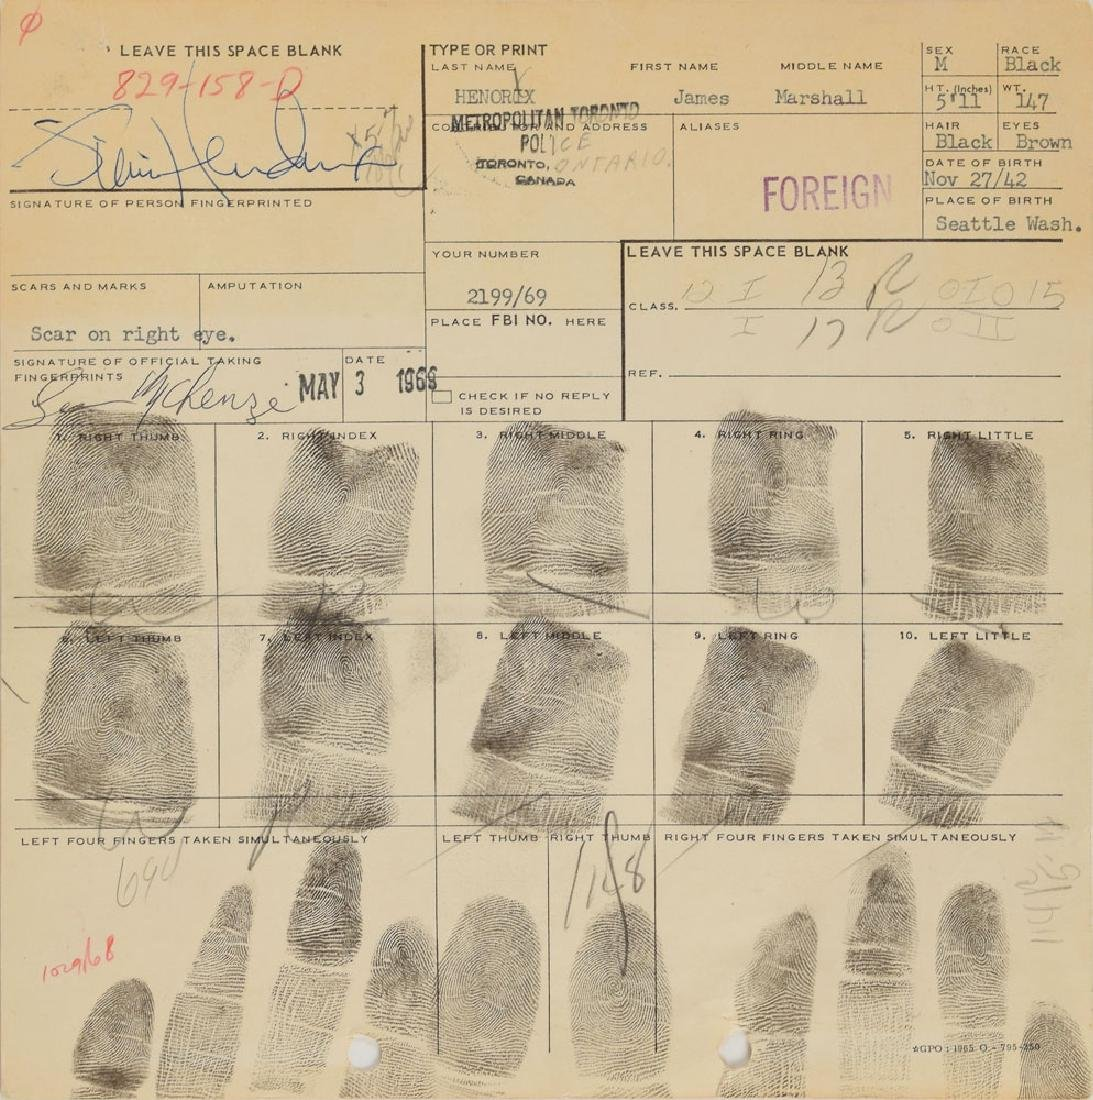 Jimi Hendrix Signed 1969 Toronto Arrest Fingerprint Card